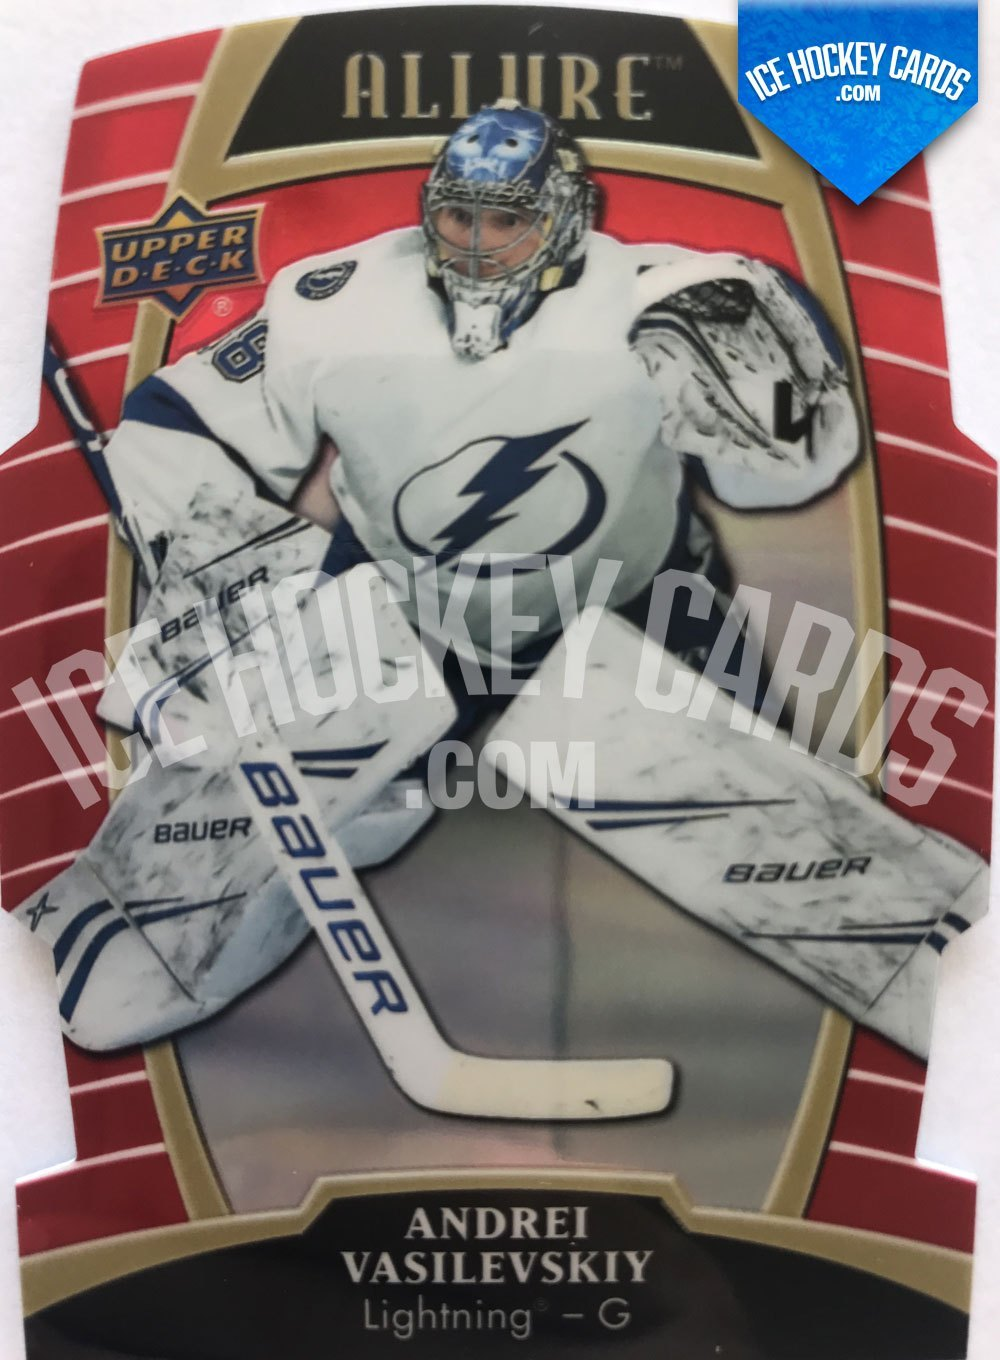 Upper Deck - Allure 19-20 - Andrei Vasilevskiy Red Base Card